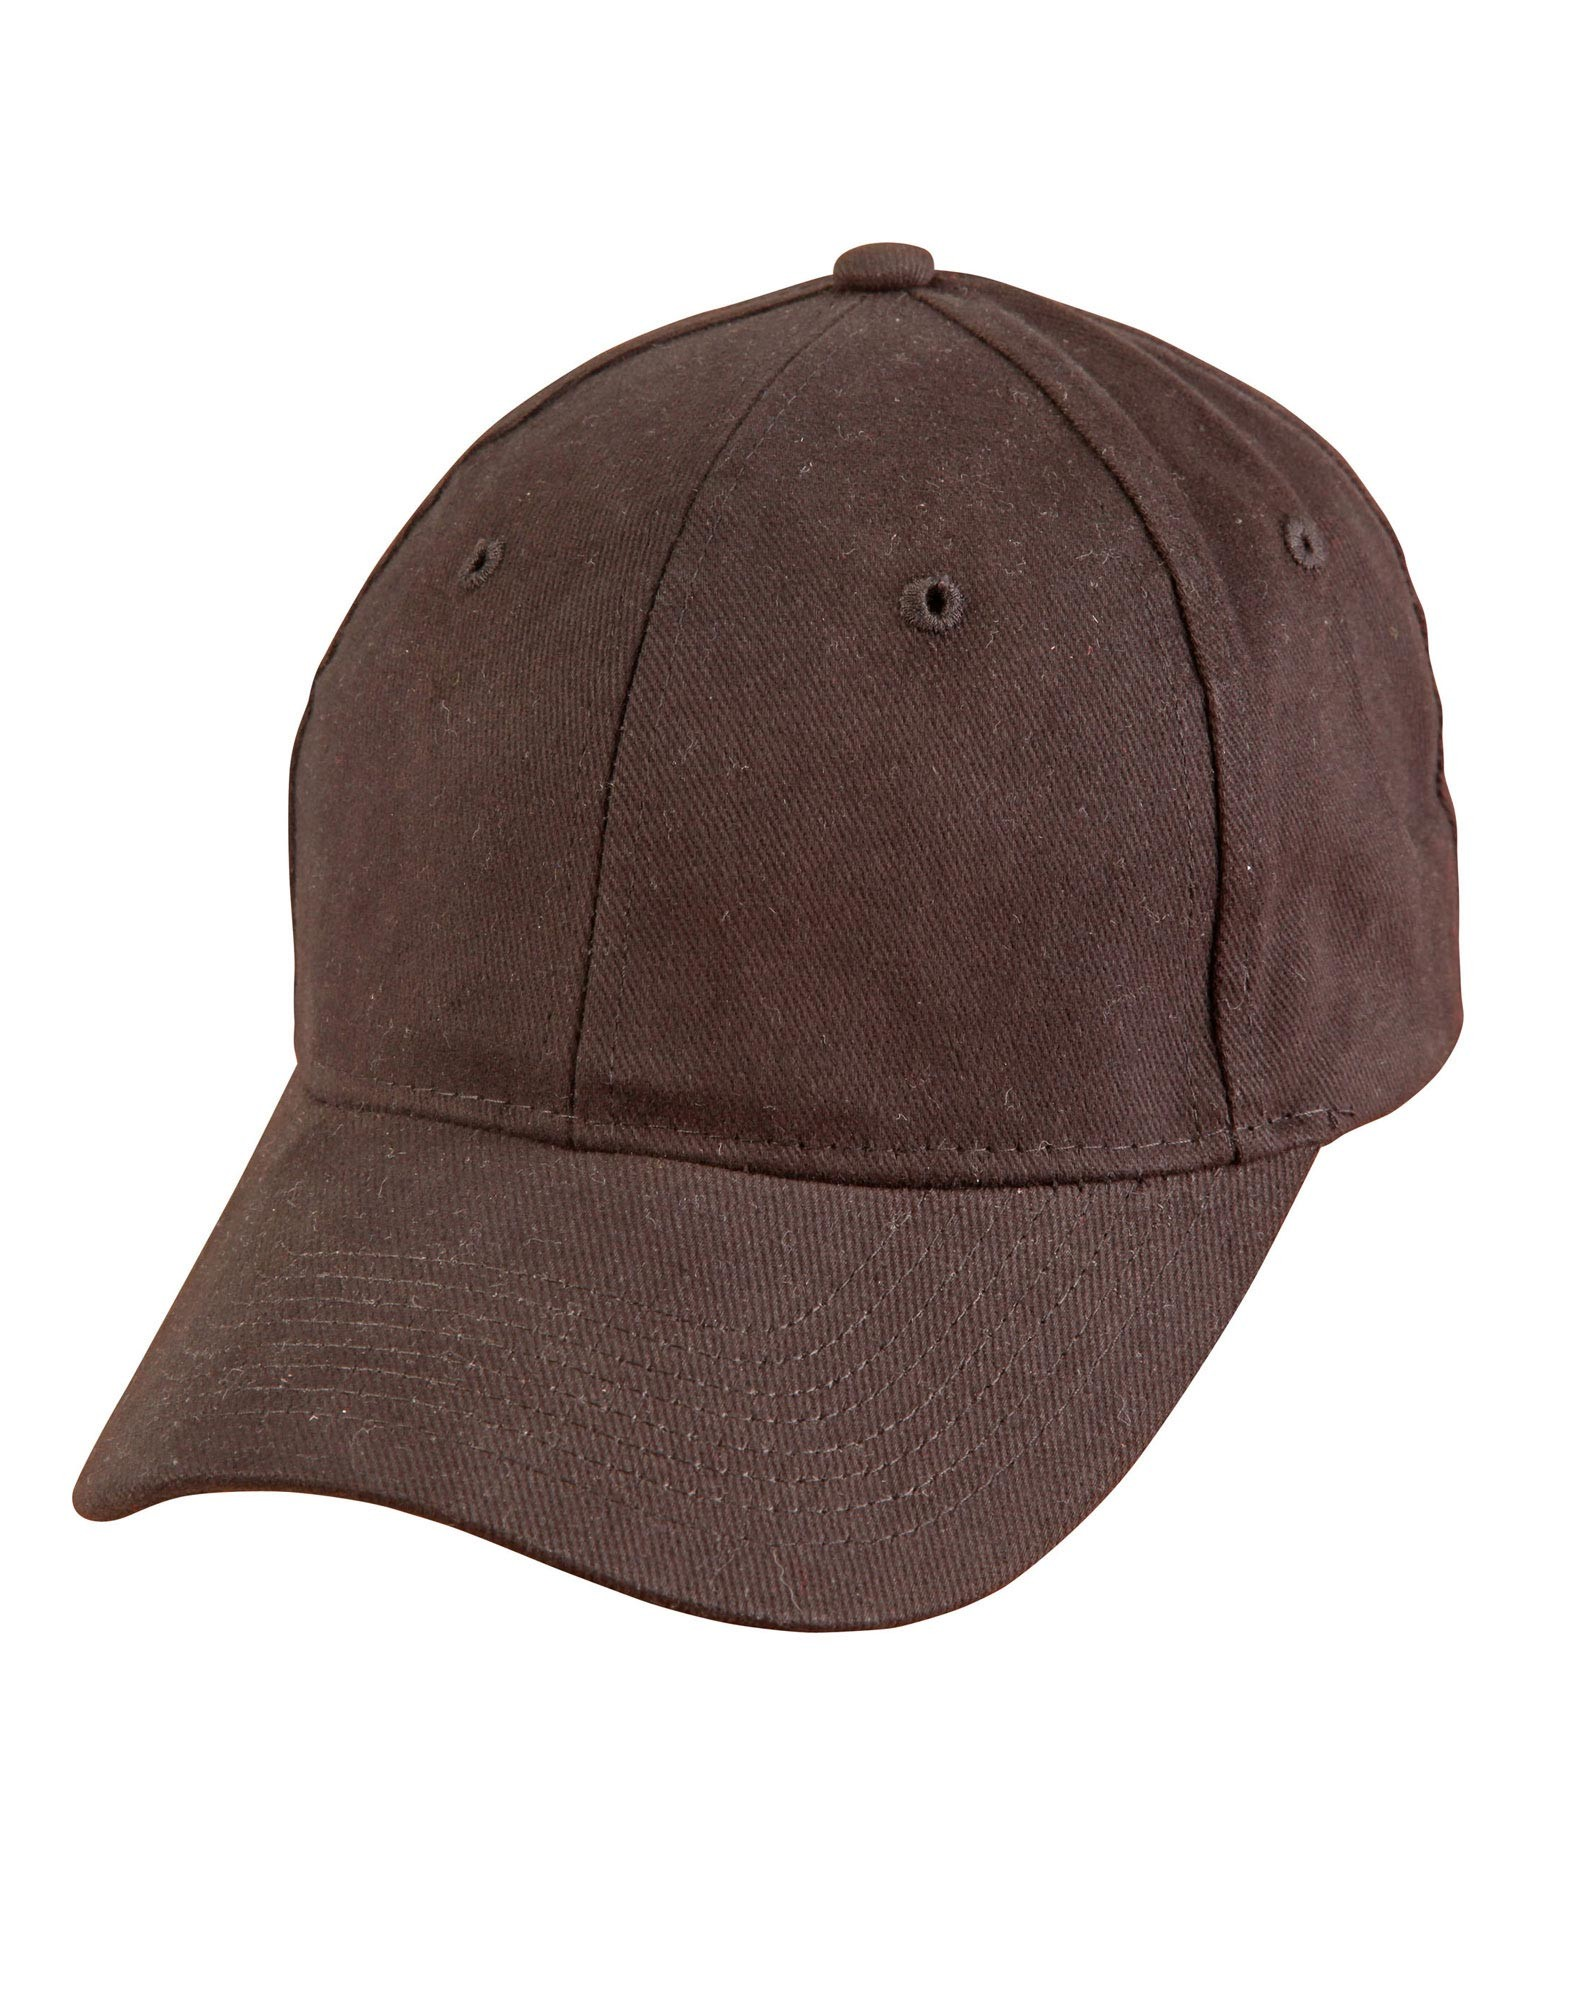 Heavy Brushed Cotton Cap With Buckle